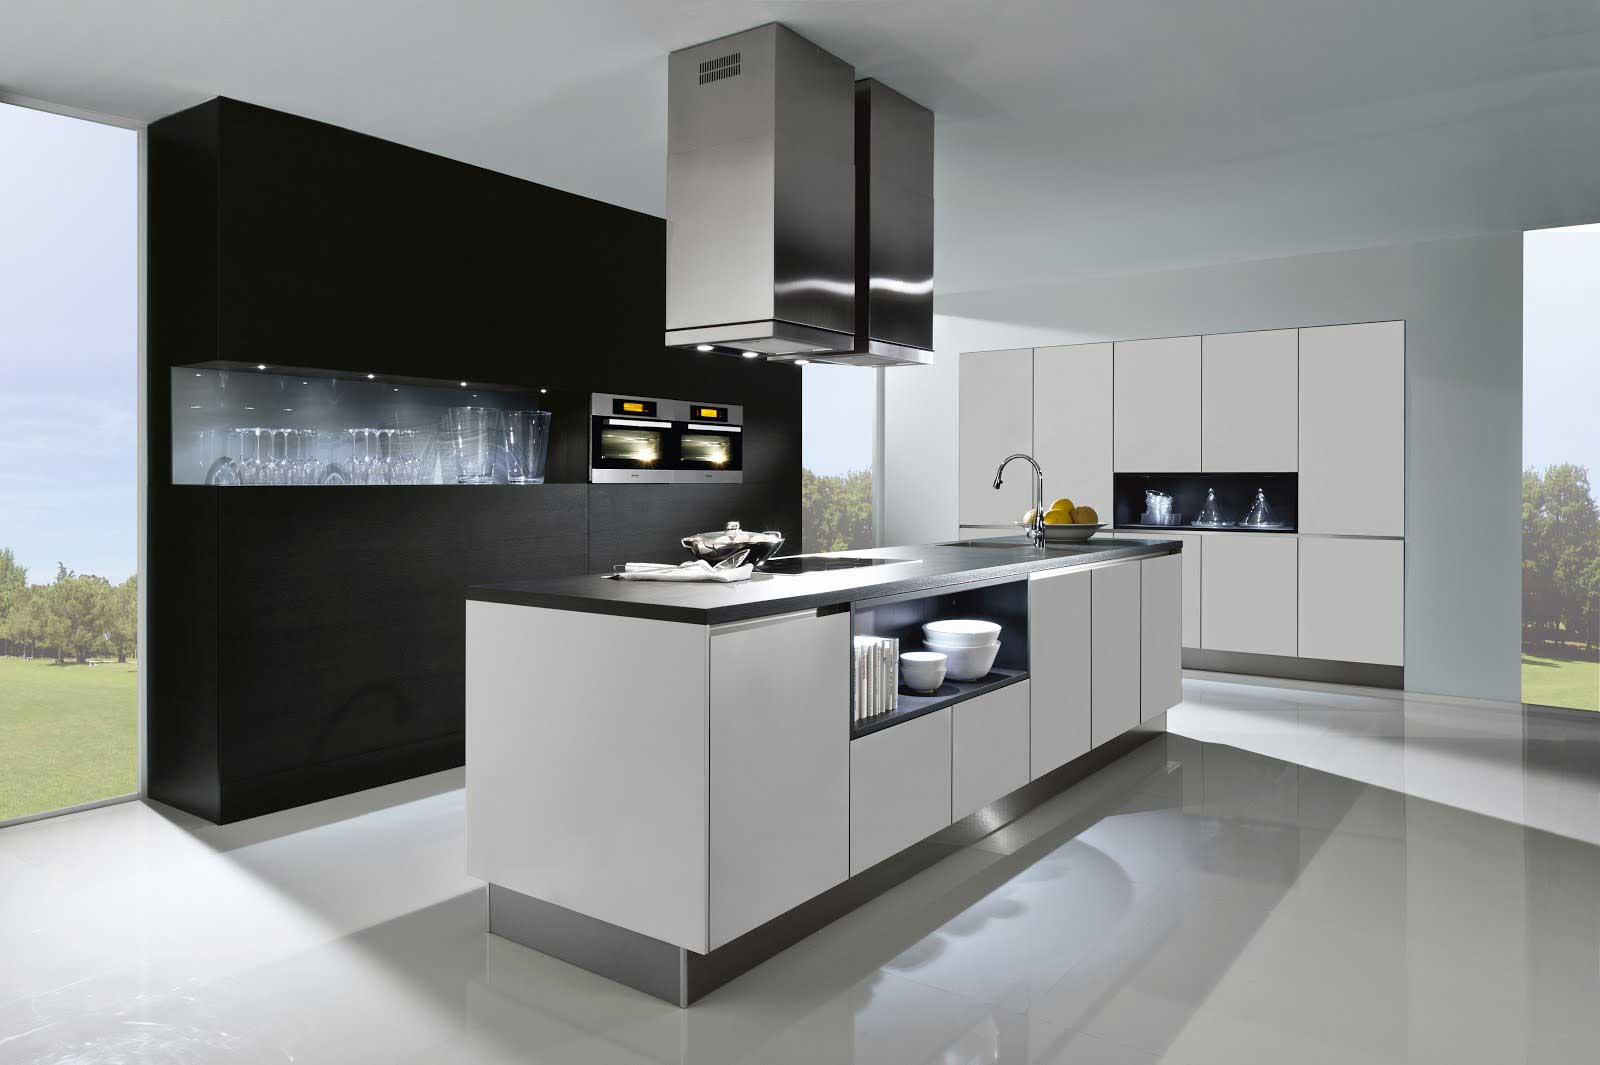 german kitchen cabinets cost of a new fitted kitchens dublin monaghan handleless nobilia